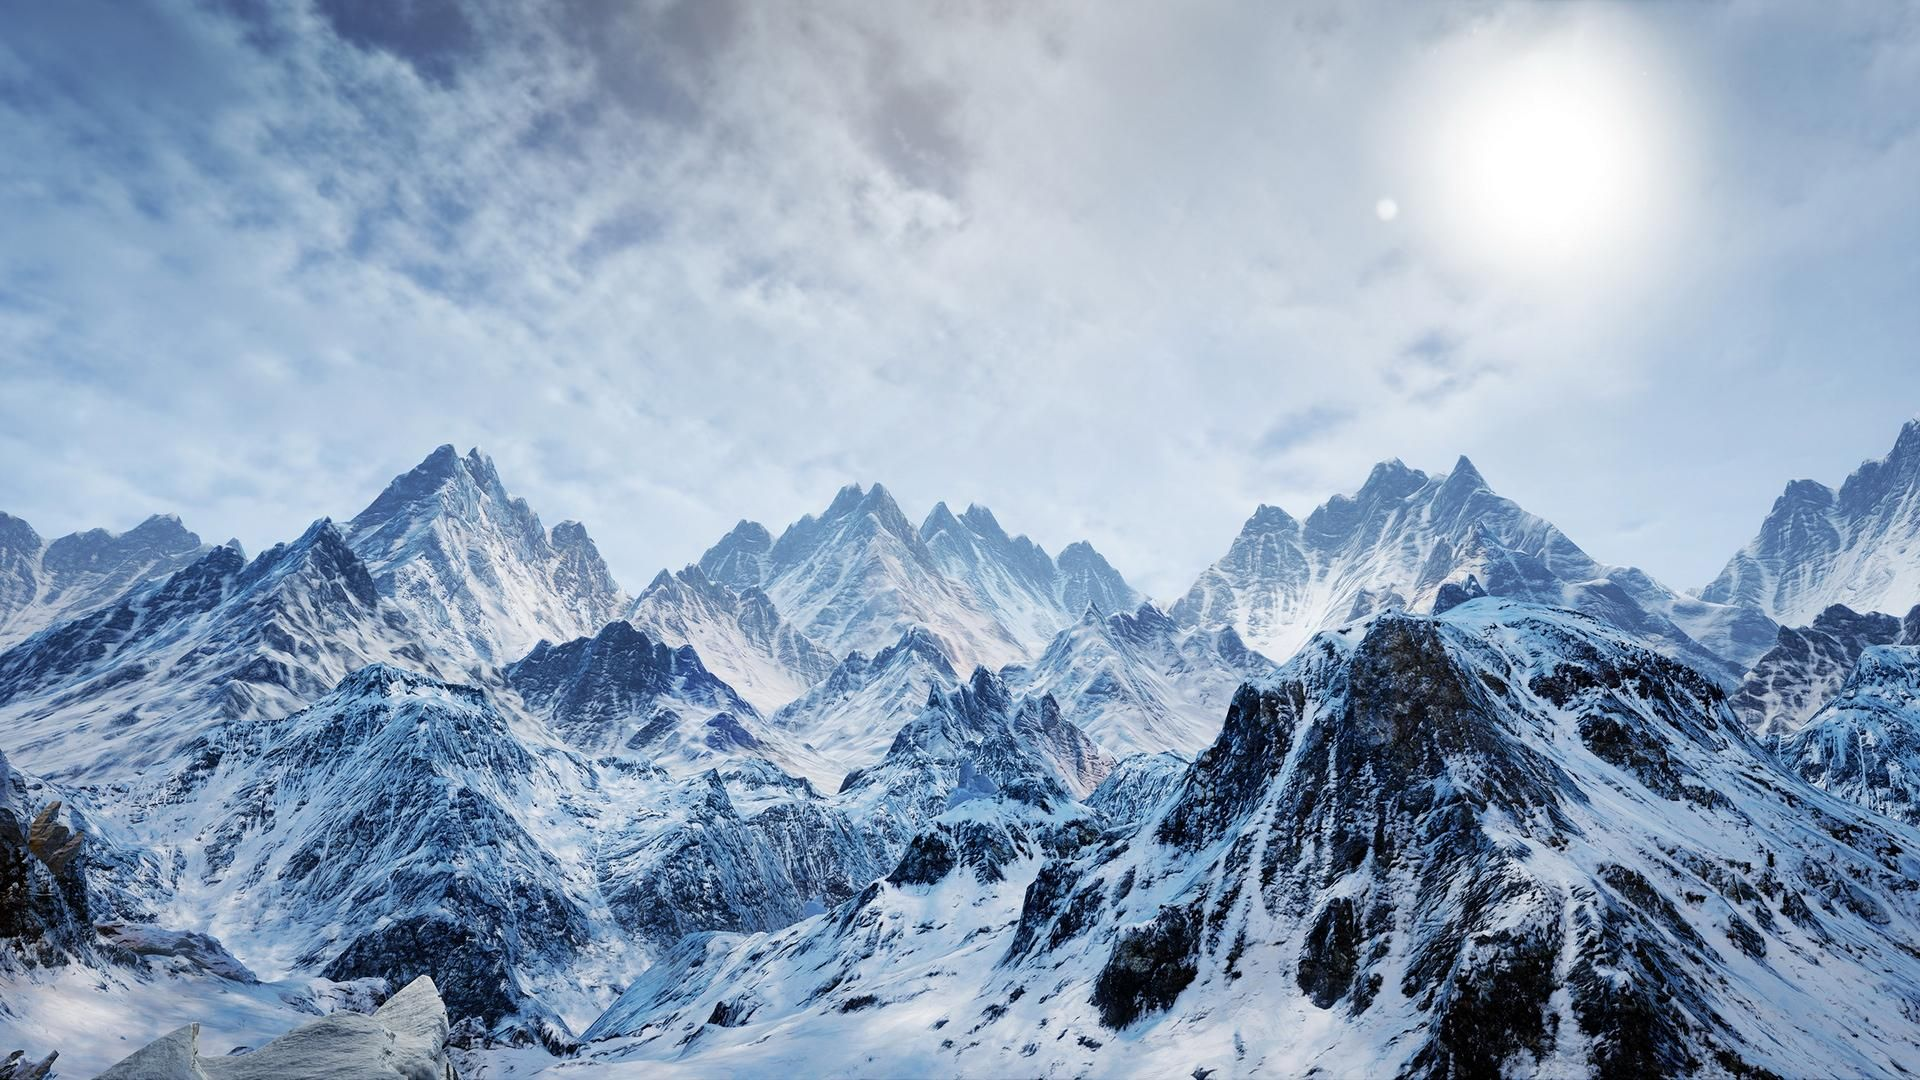 Snow Mountain Wallpapers High Resolution For Free